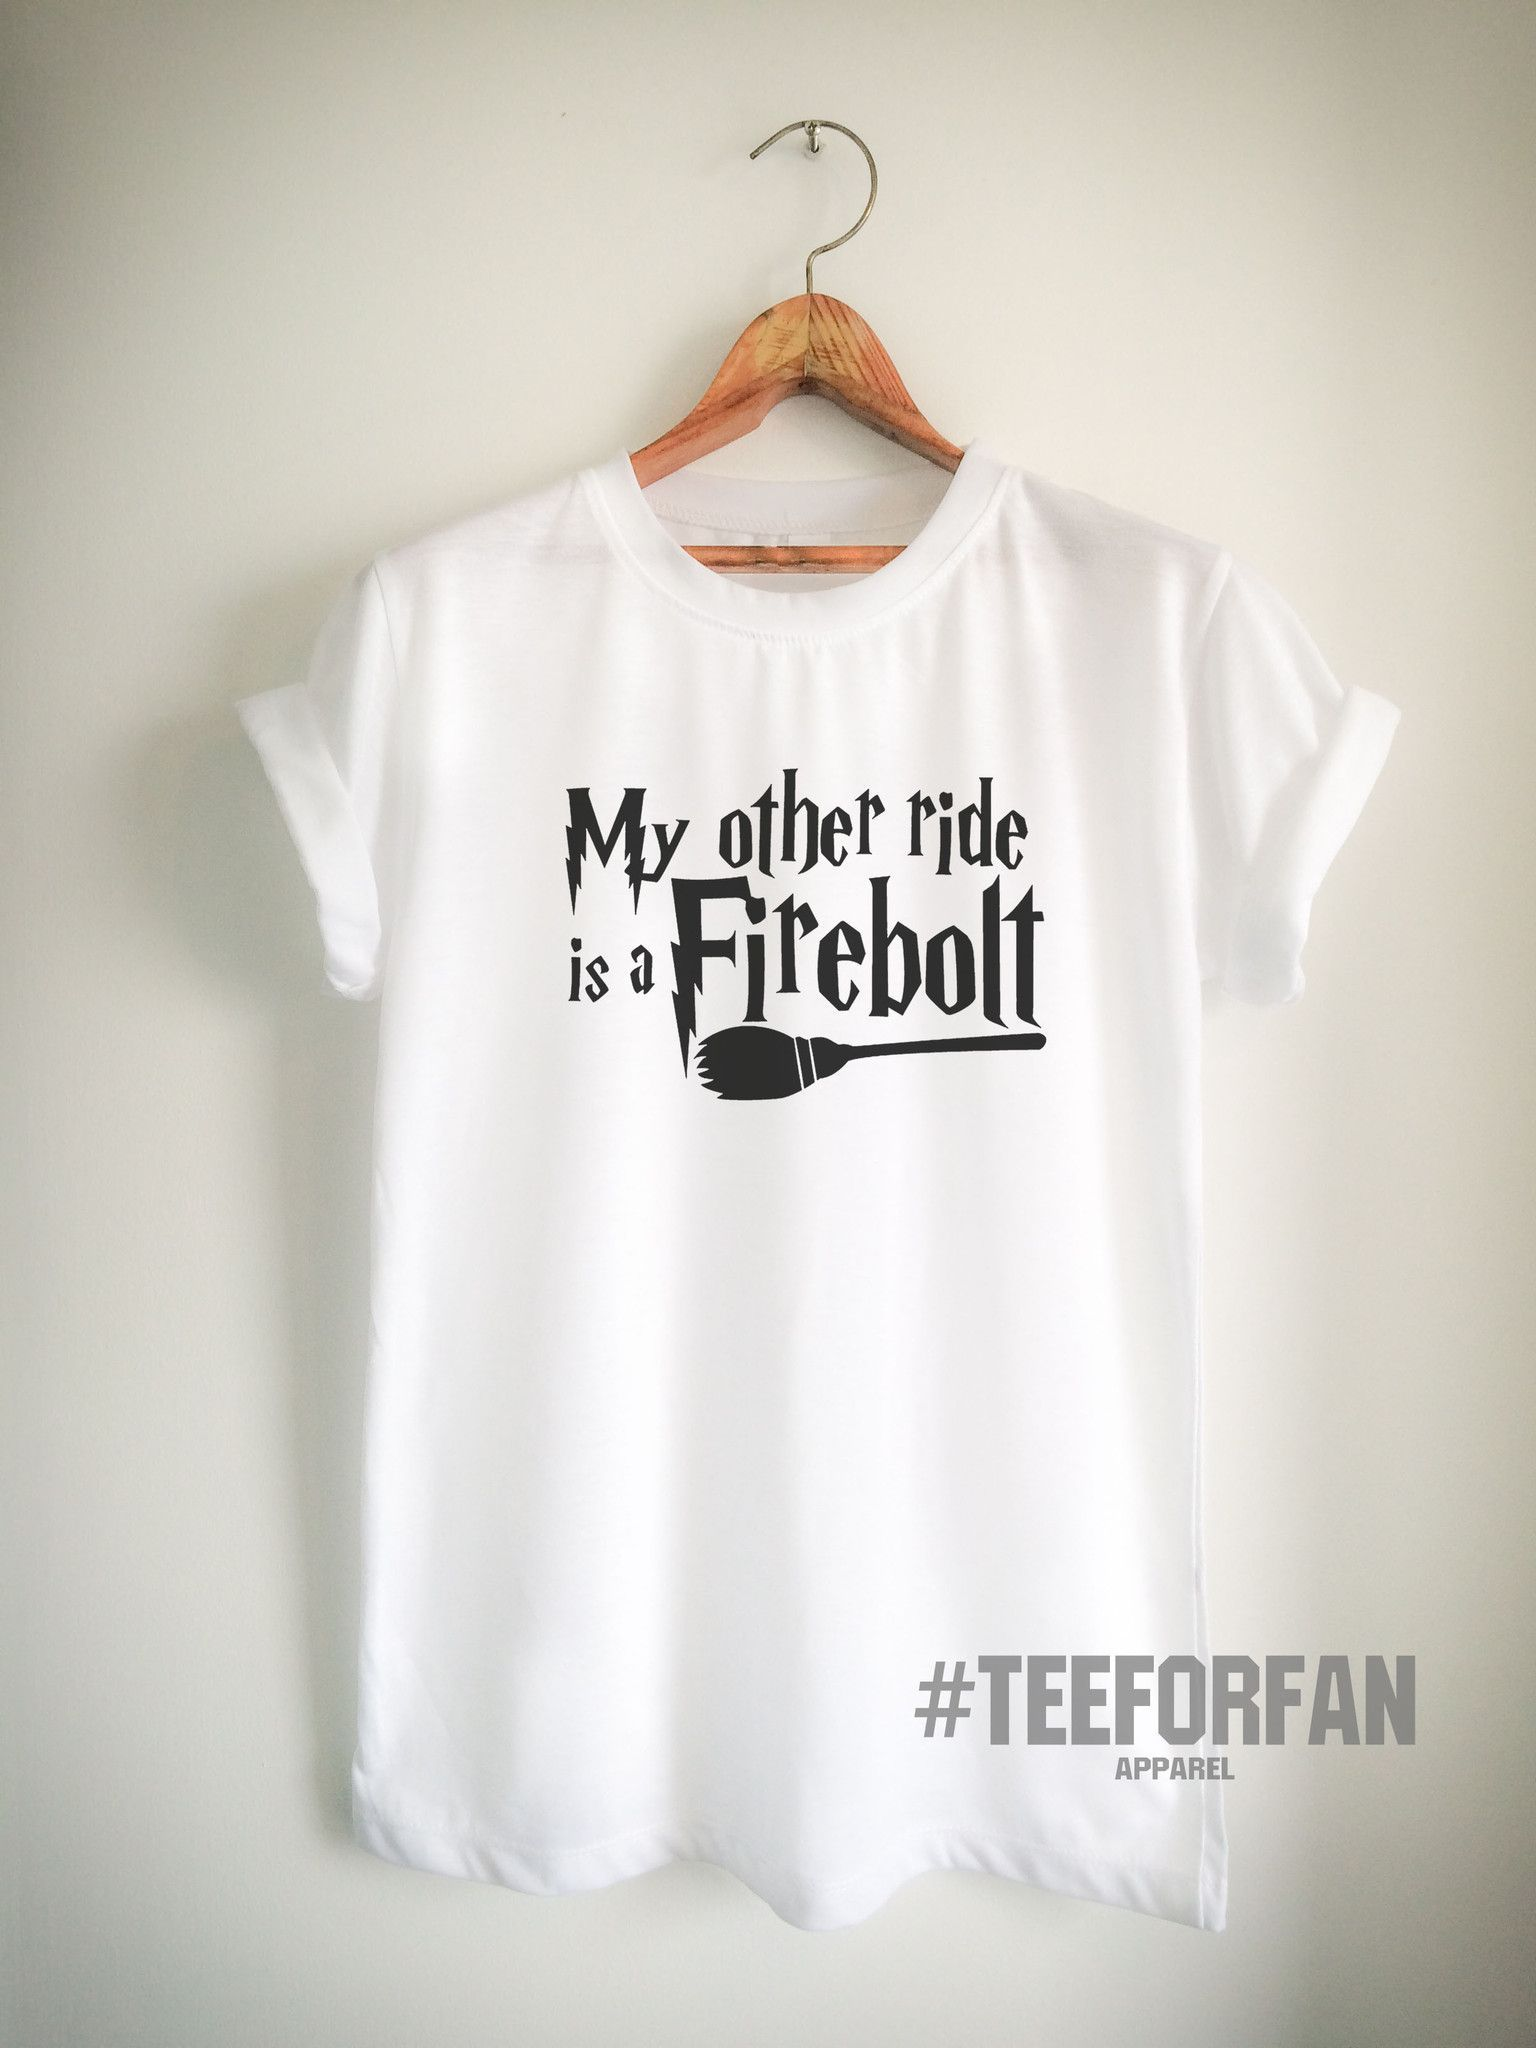 Harry Potter Shirts Merchandise My Other Ride Is Firebolt Broomstick Quidditch T Clothes Apparel Top Tee For Women Girls Men